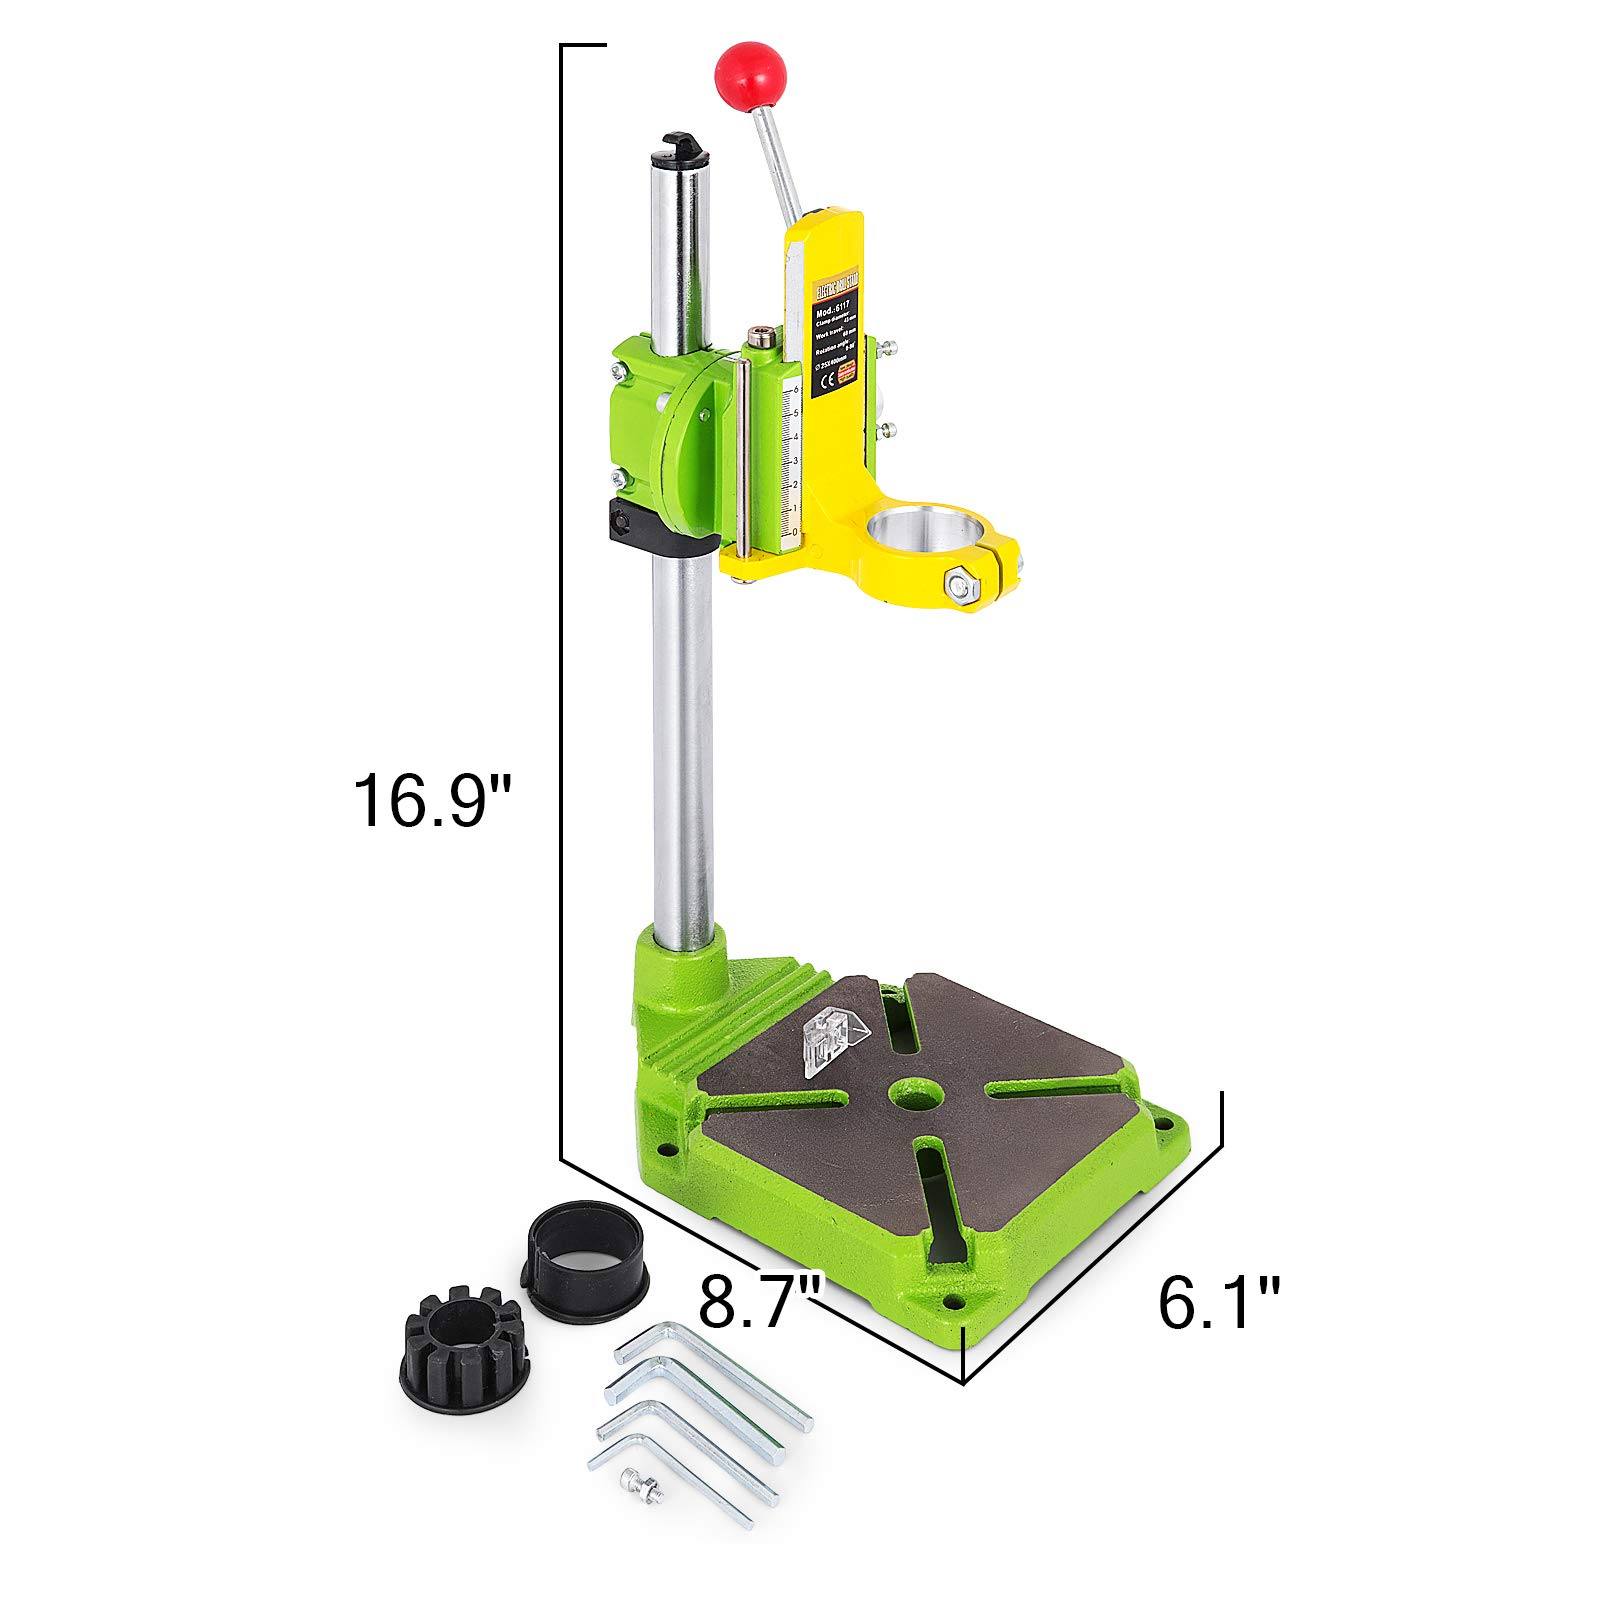 Happybuy Drill Press Stand 90 Degrees Rotary Drill Stand Holder 60mm Work Travel Repair Tool Clamp by Happybuy (Image #2)